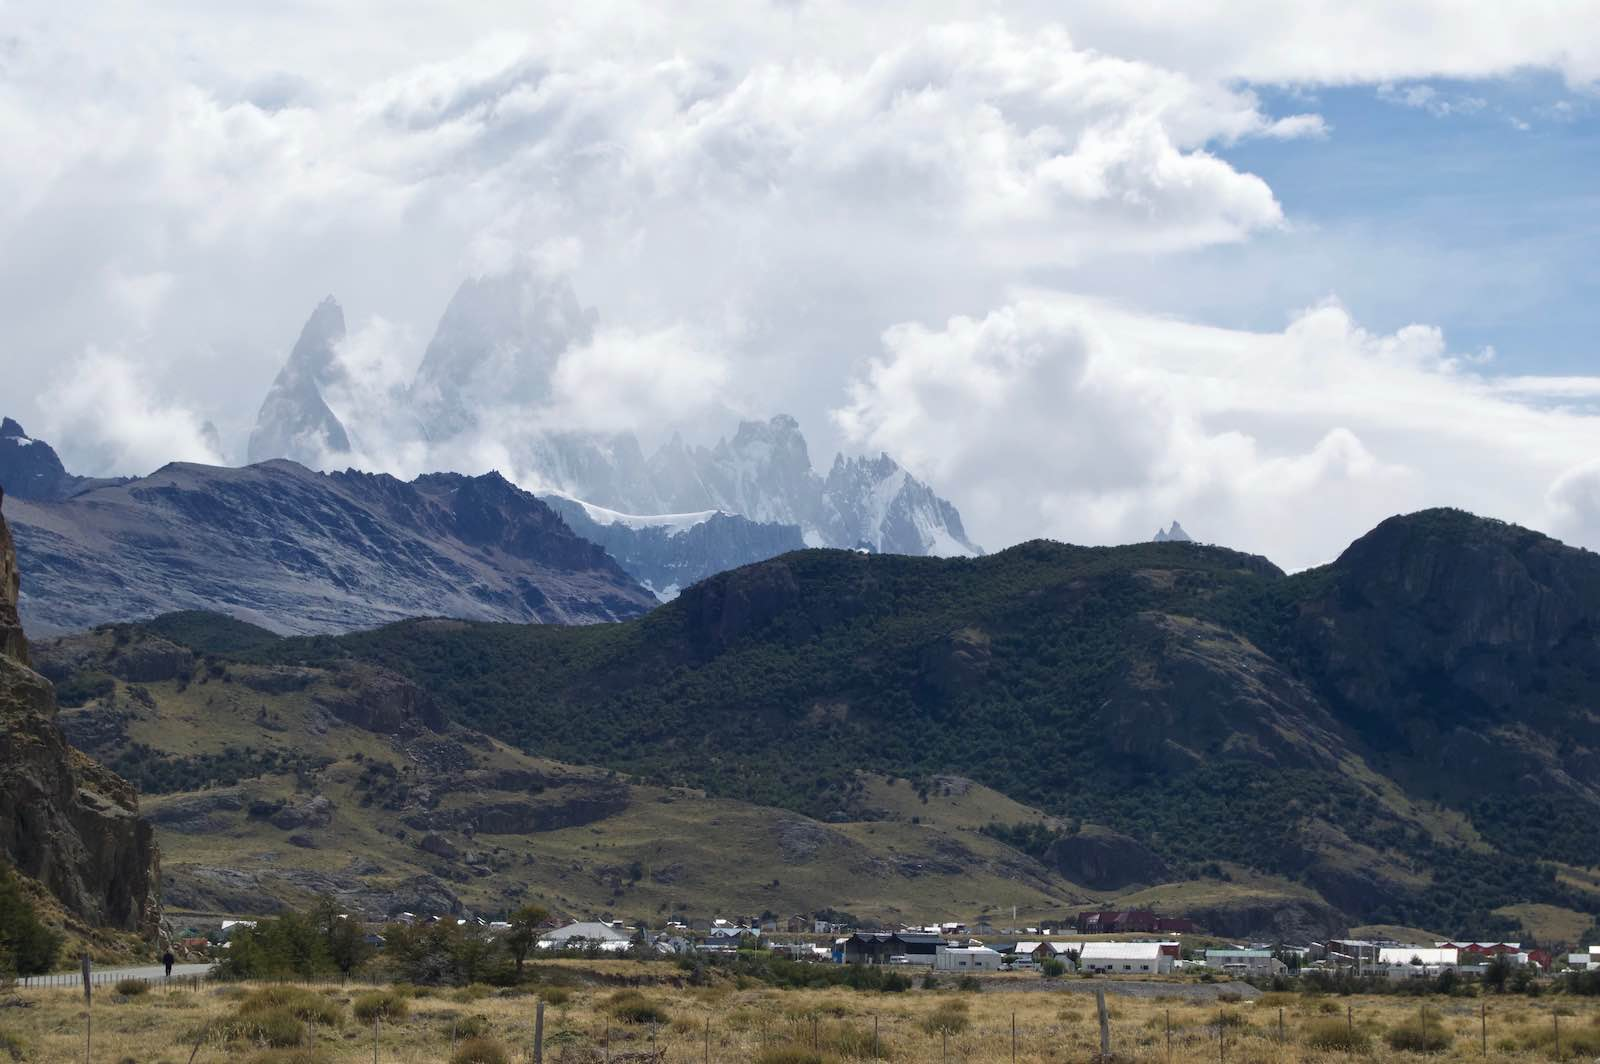 The town of El Chalten with the clouded image of Mount Fitz Roy in the background.